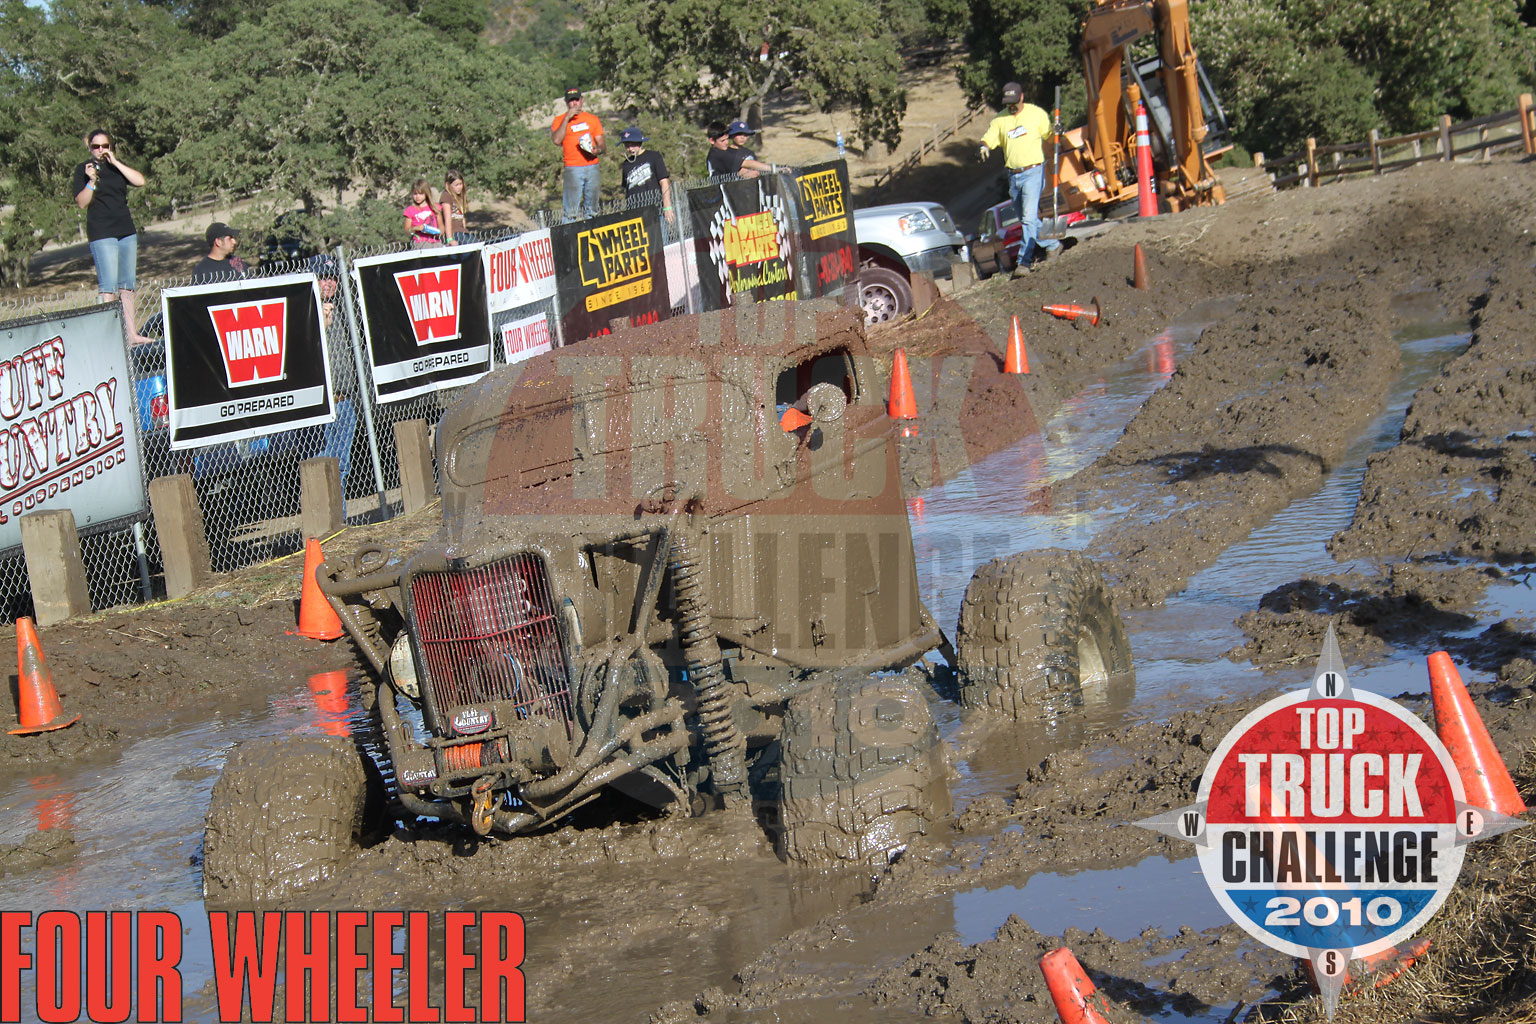 2010 Top Truck Challenge Mud Pit Kevin Simmons 1937 Ford Pickup